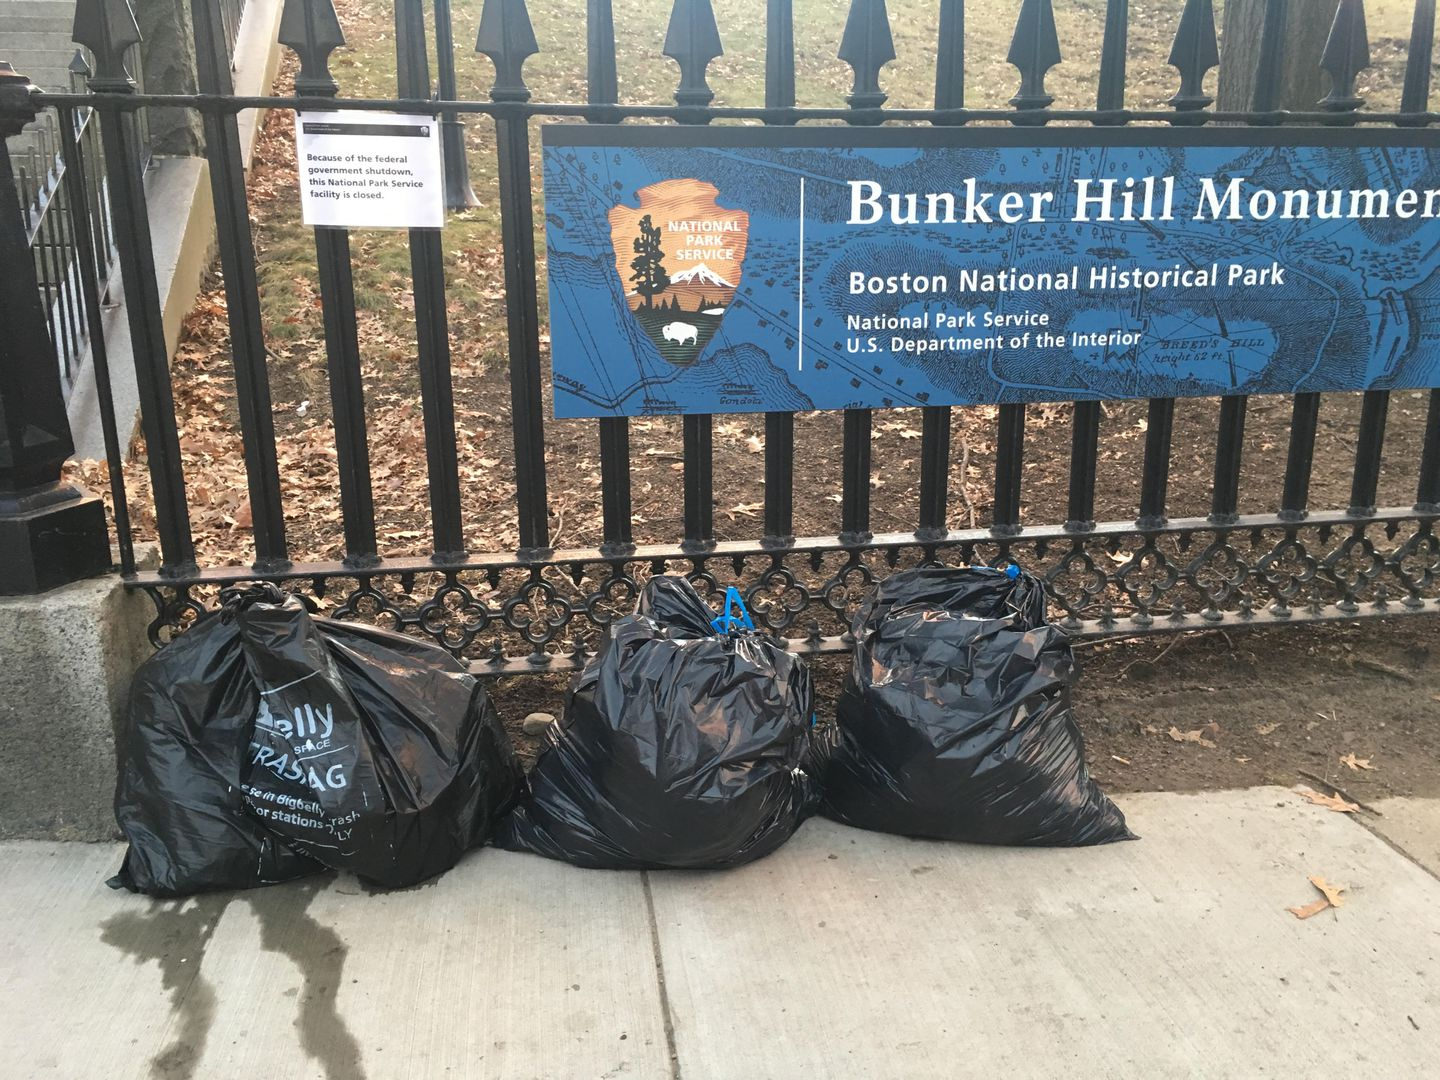 Trash left by receptacles at the Bunker Hill Monument.